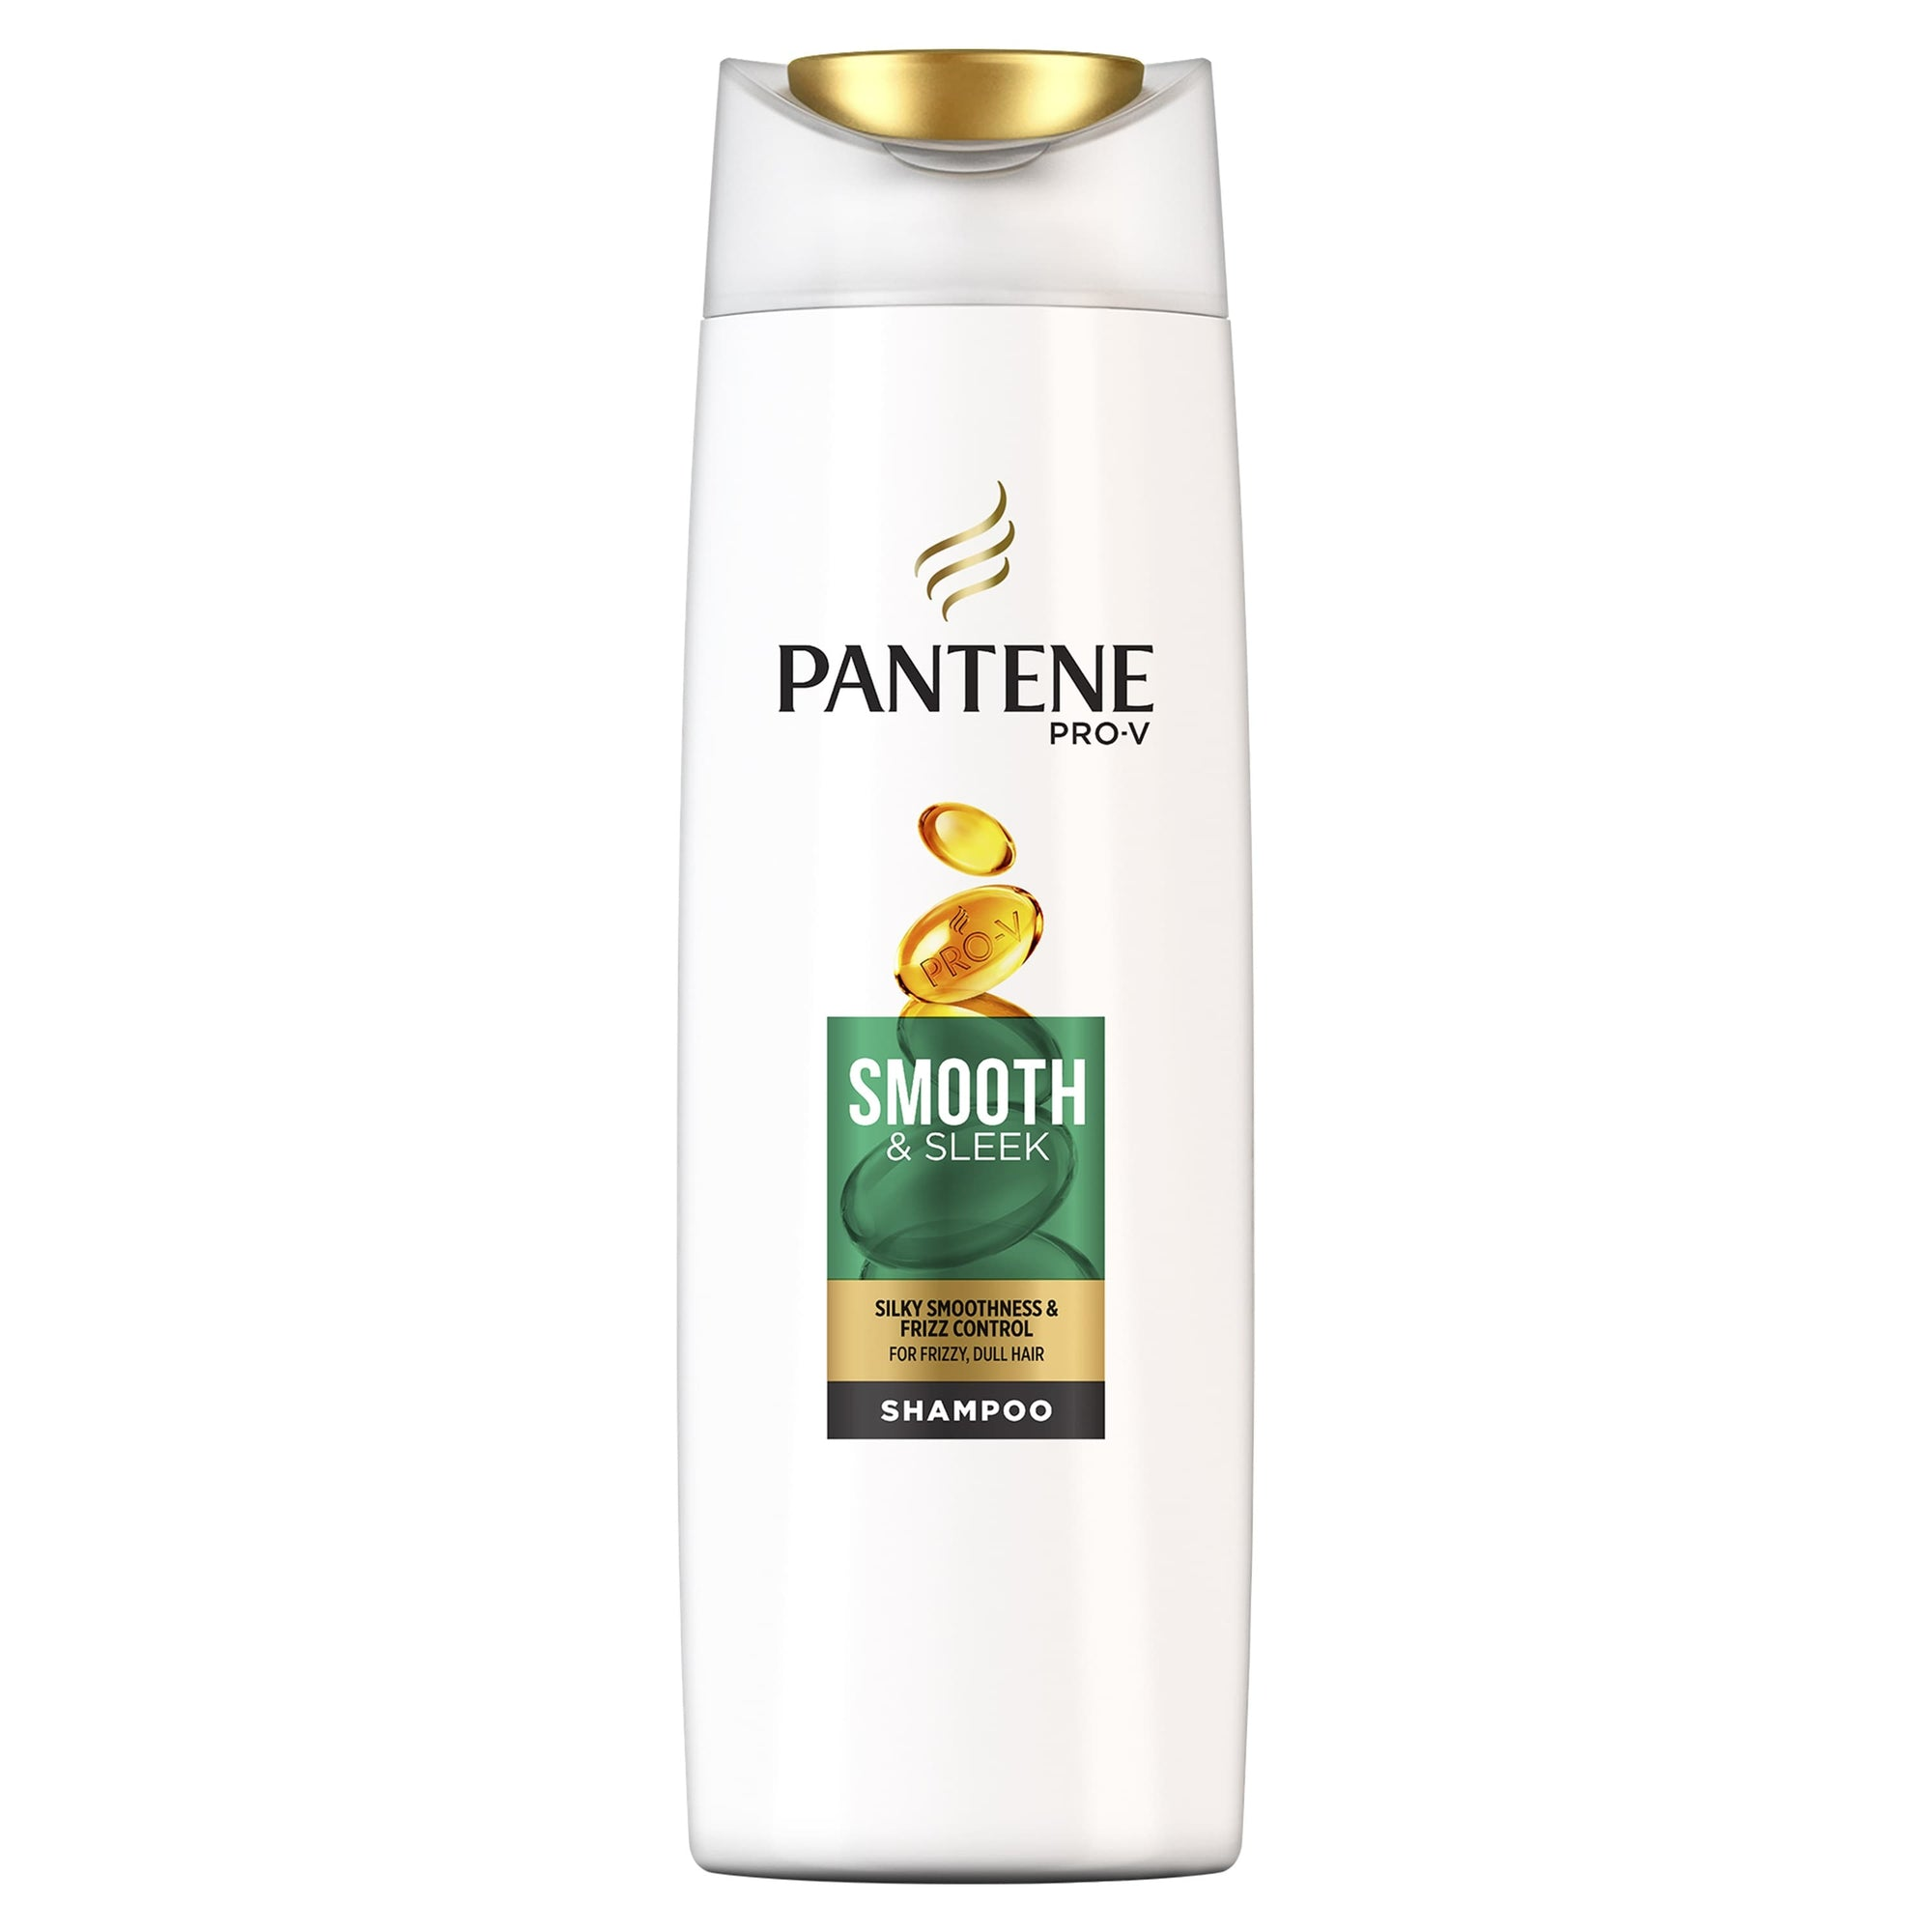 Pantene Smooth and Sleek Shampoo 360ML